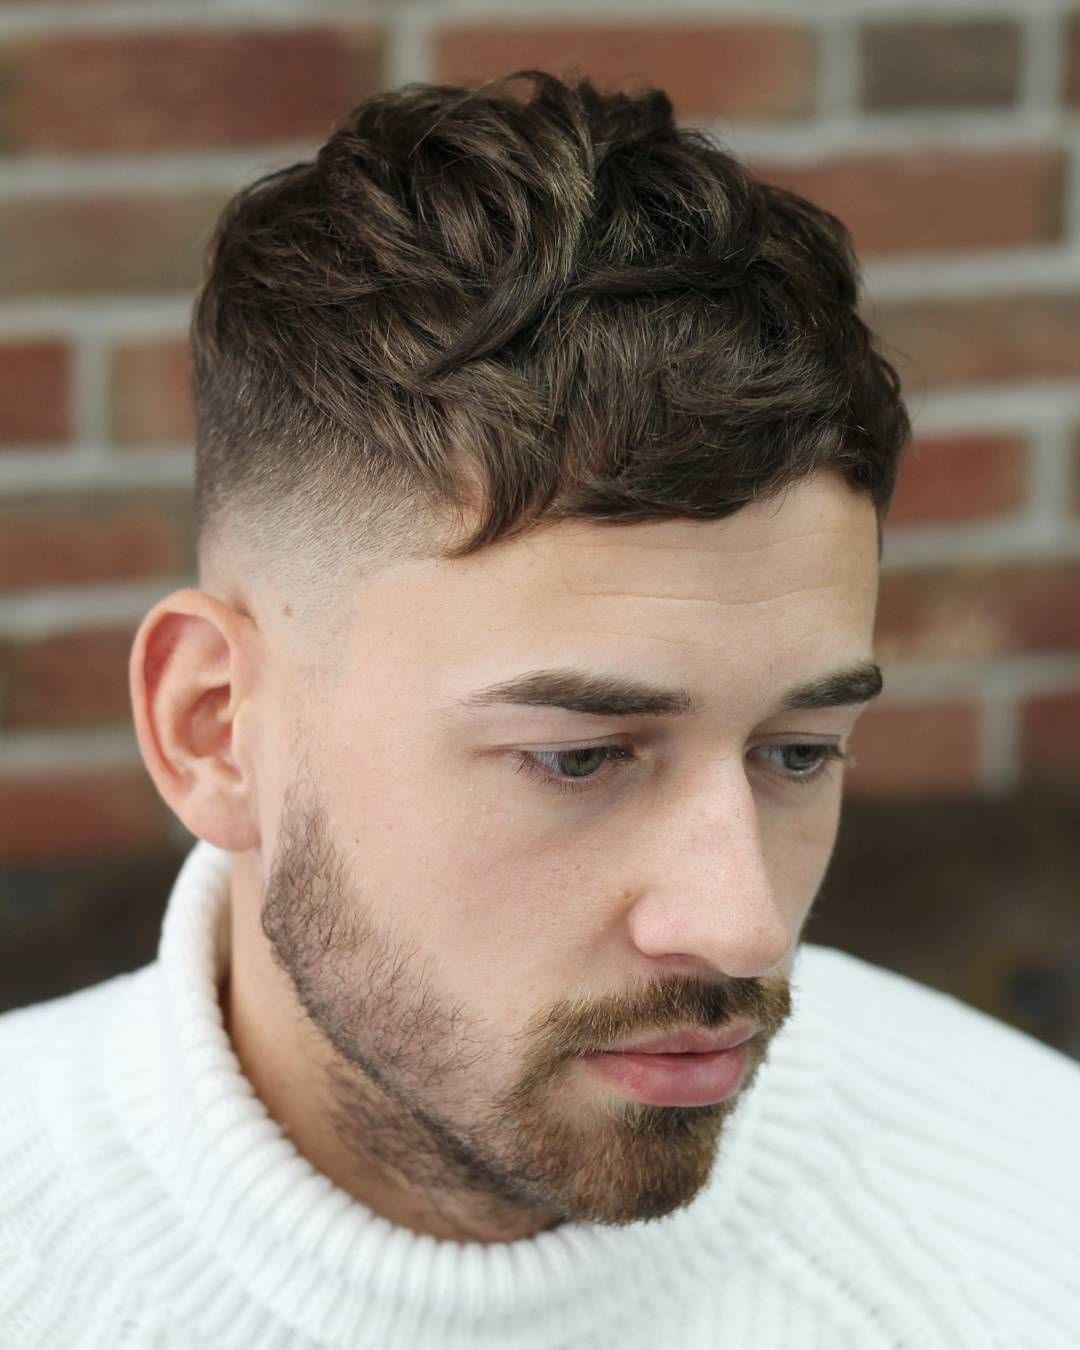 Updated January 10 2017 For Most Men Short Haircuts And Short Hairstyles Are The Go To L Mens Haircuts Short Mens Short Messy Hairstyles Mens Hairstyles Short